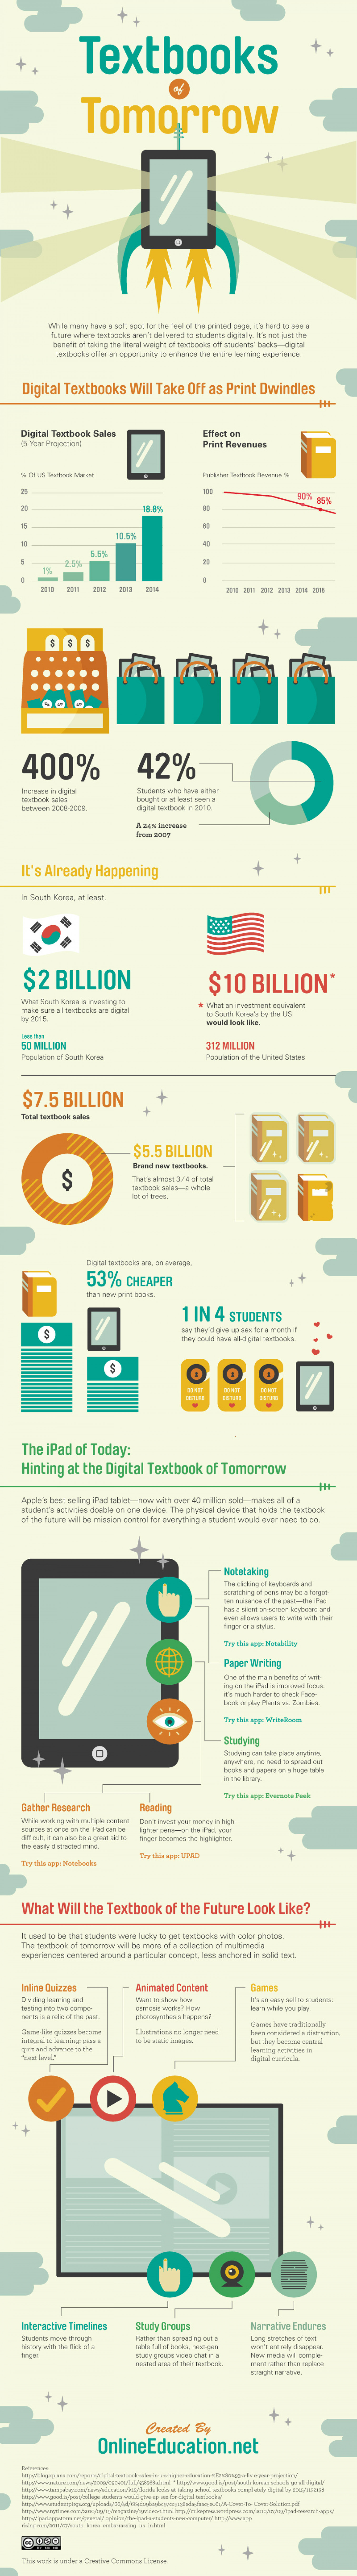 eBooks and Textbooks of the Future Infographic